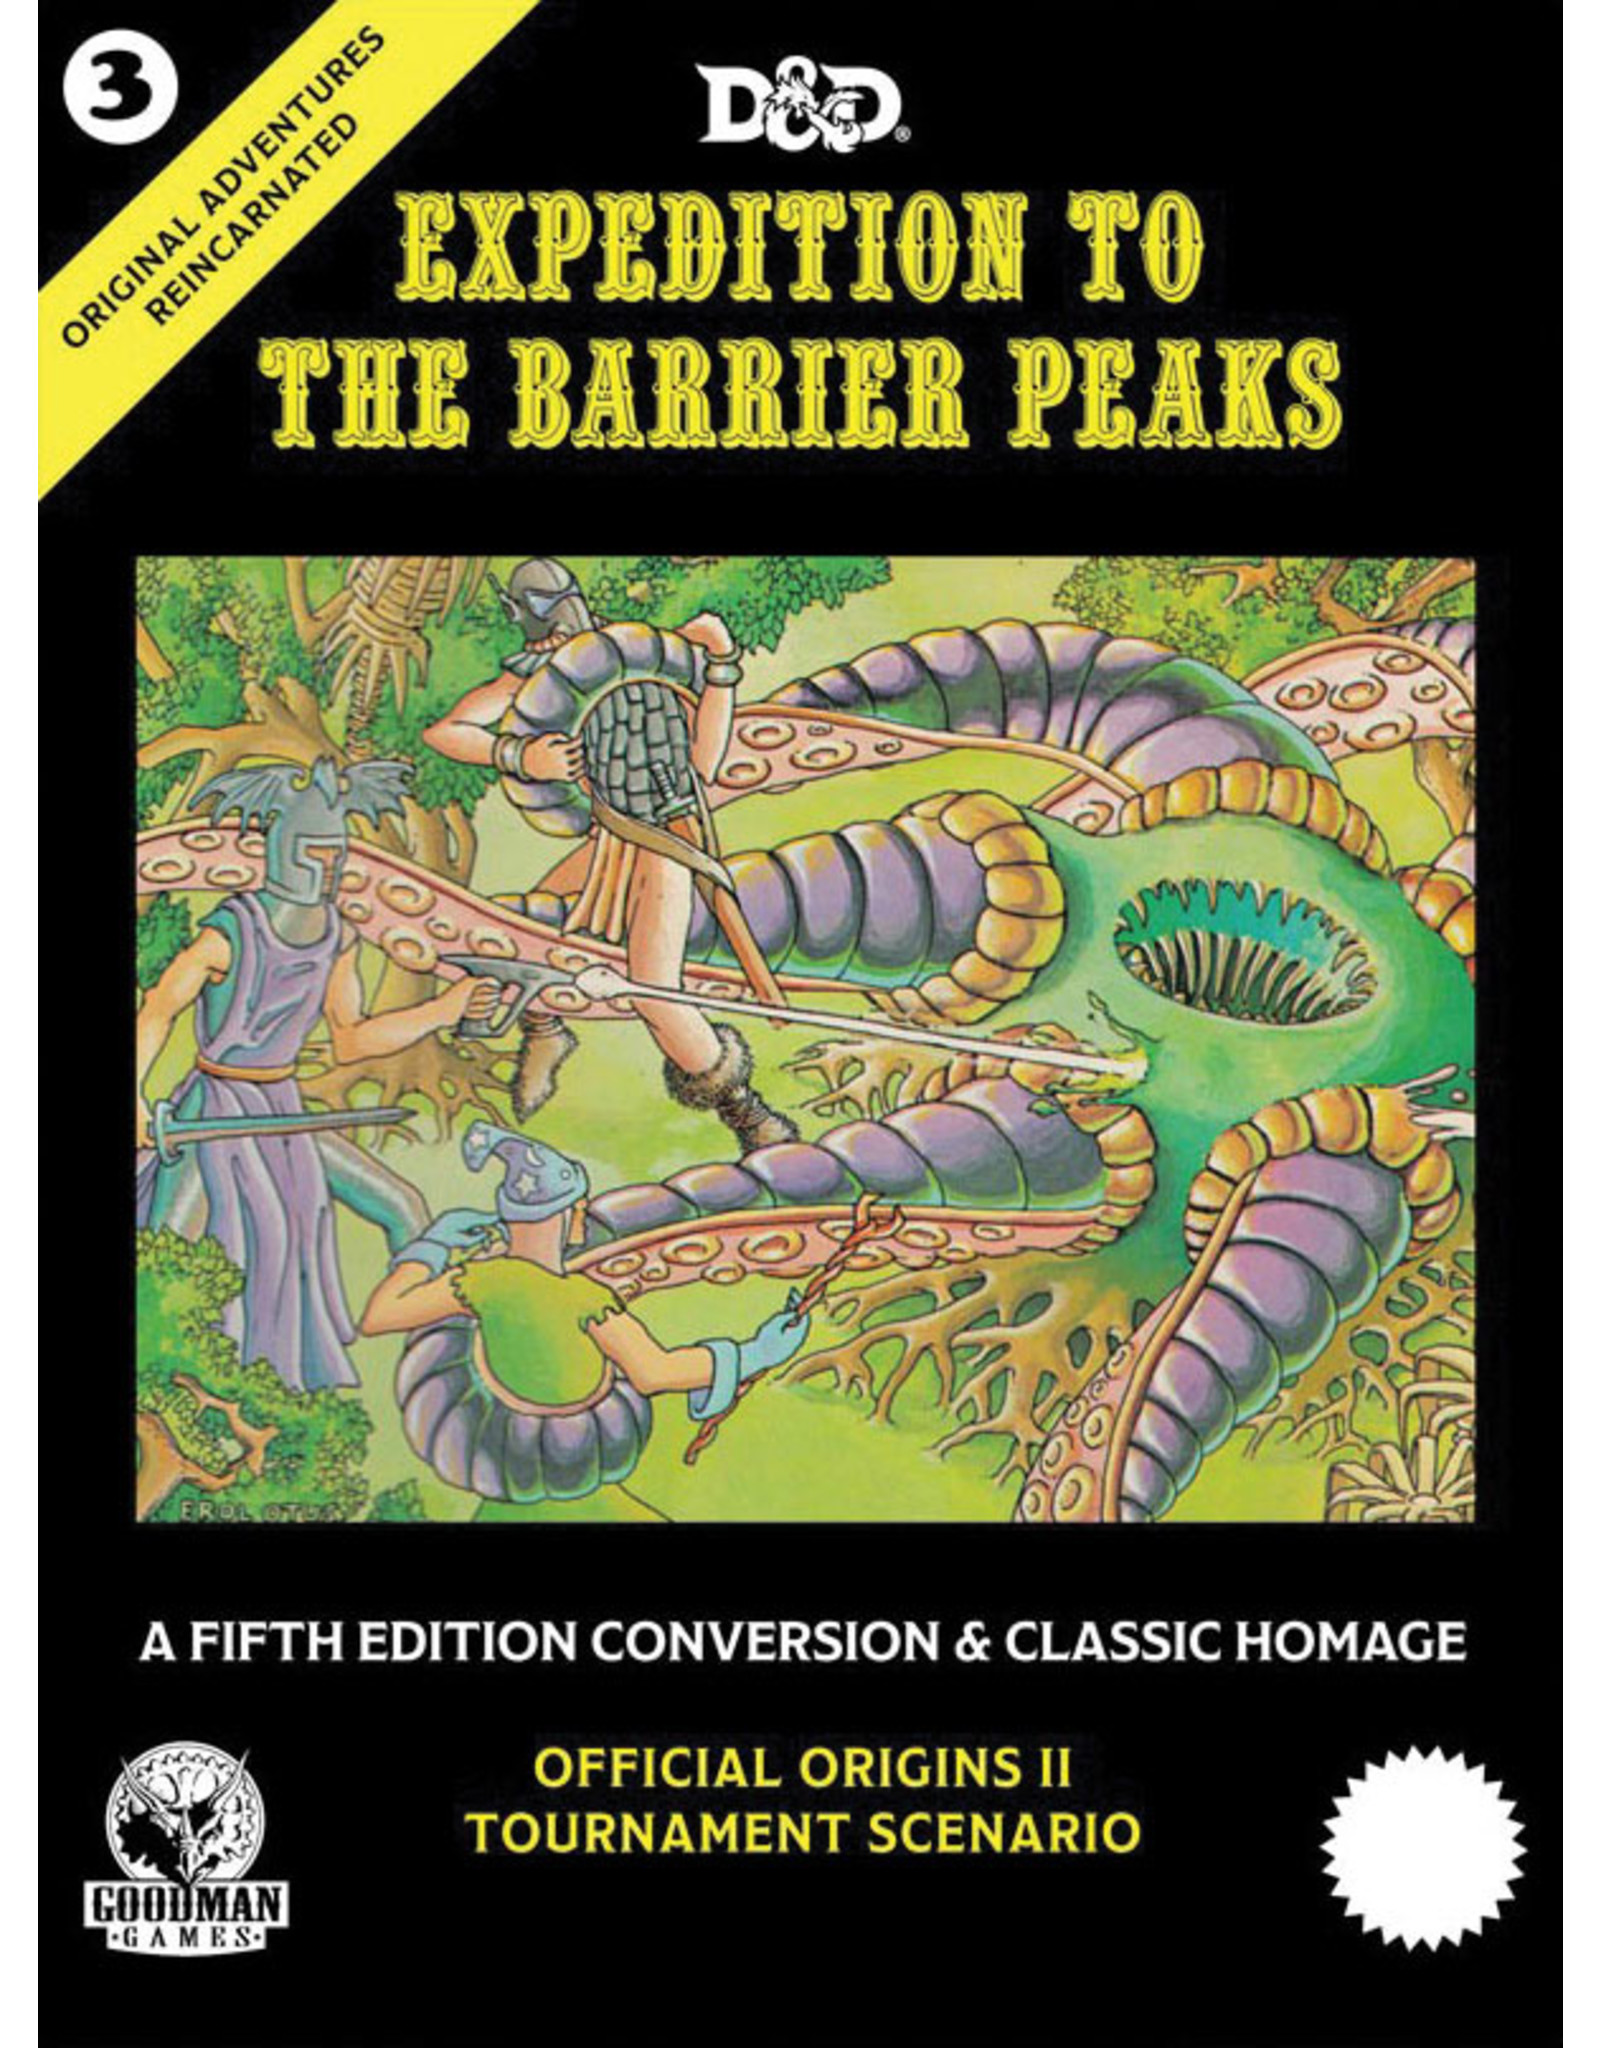 Goodman Games 5E: OAR #3: Expedition to the Barrier Peaks